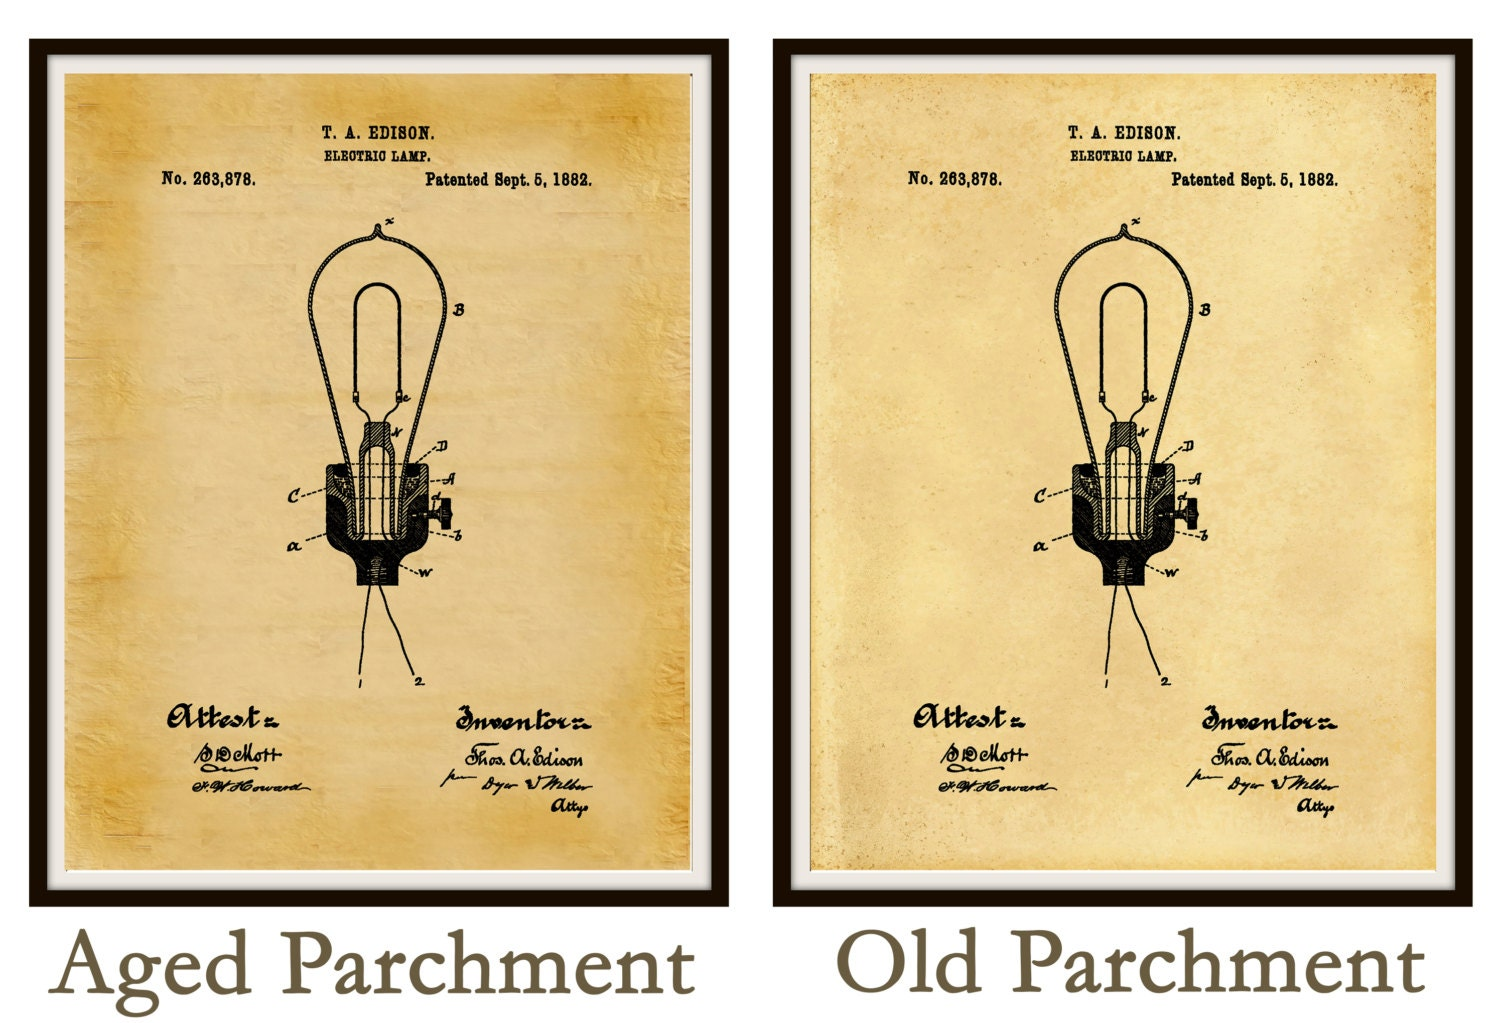 an overview of the thomas edisons introduction to the light bulb